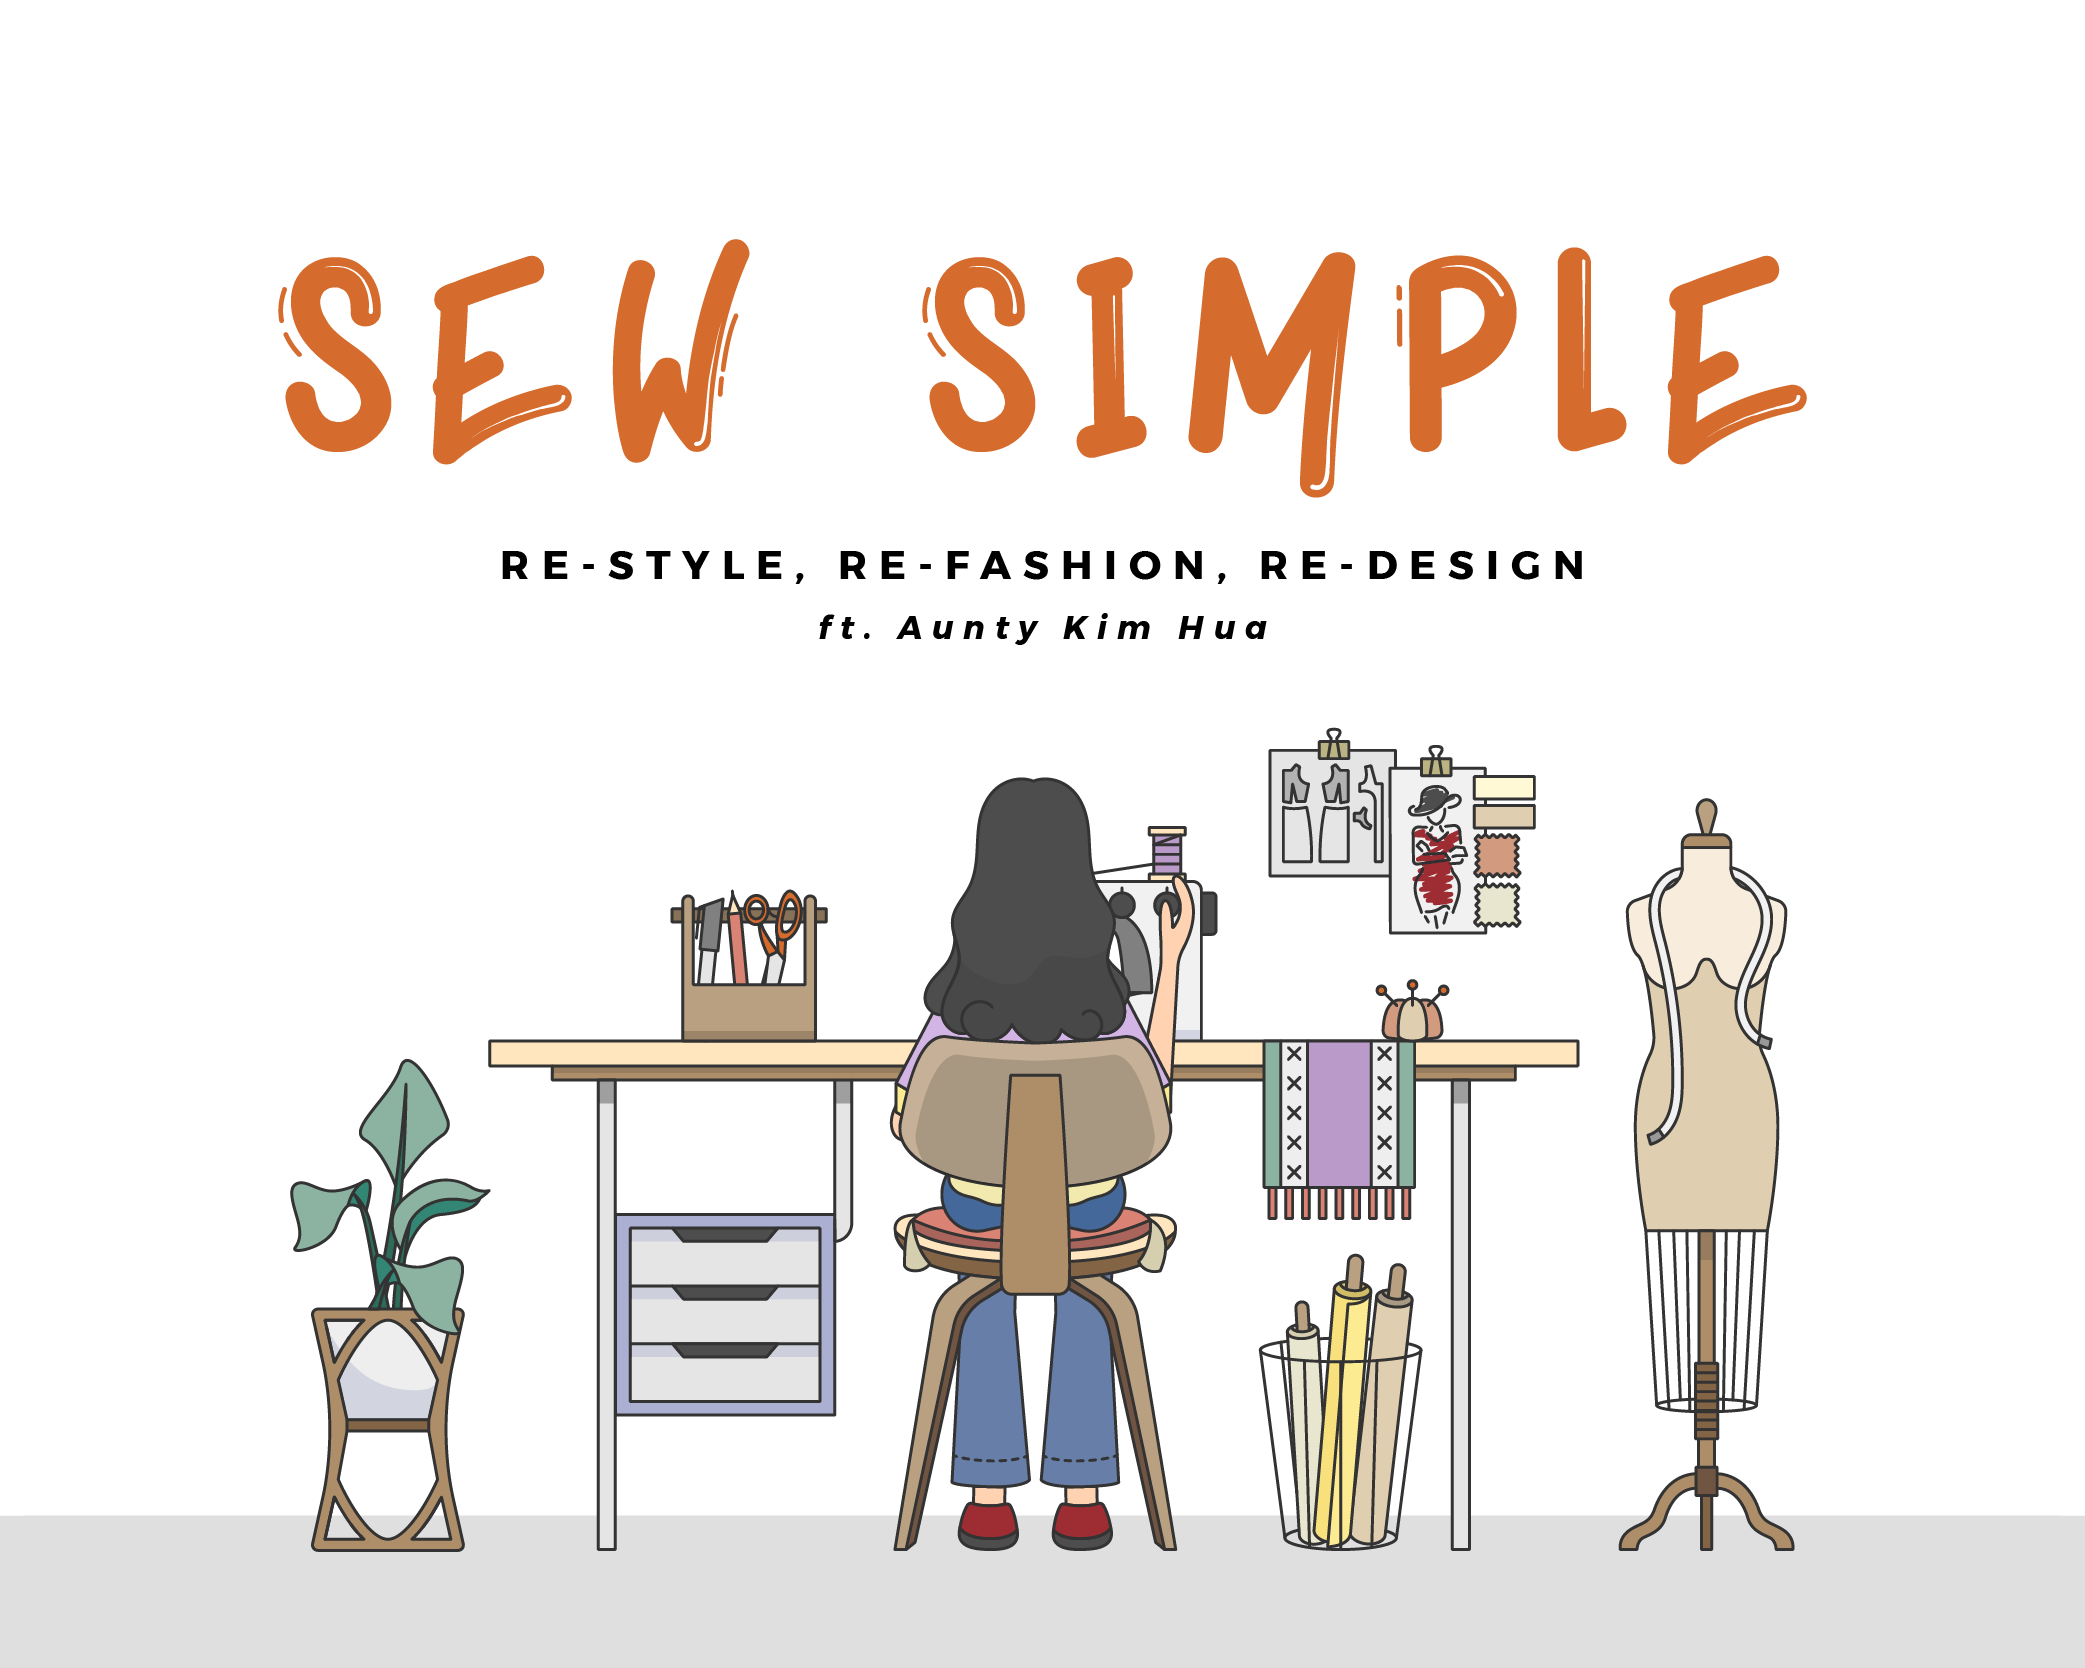 sew-simple-s-01_0_78260000_1597953068 Events